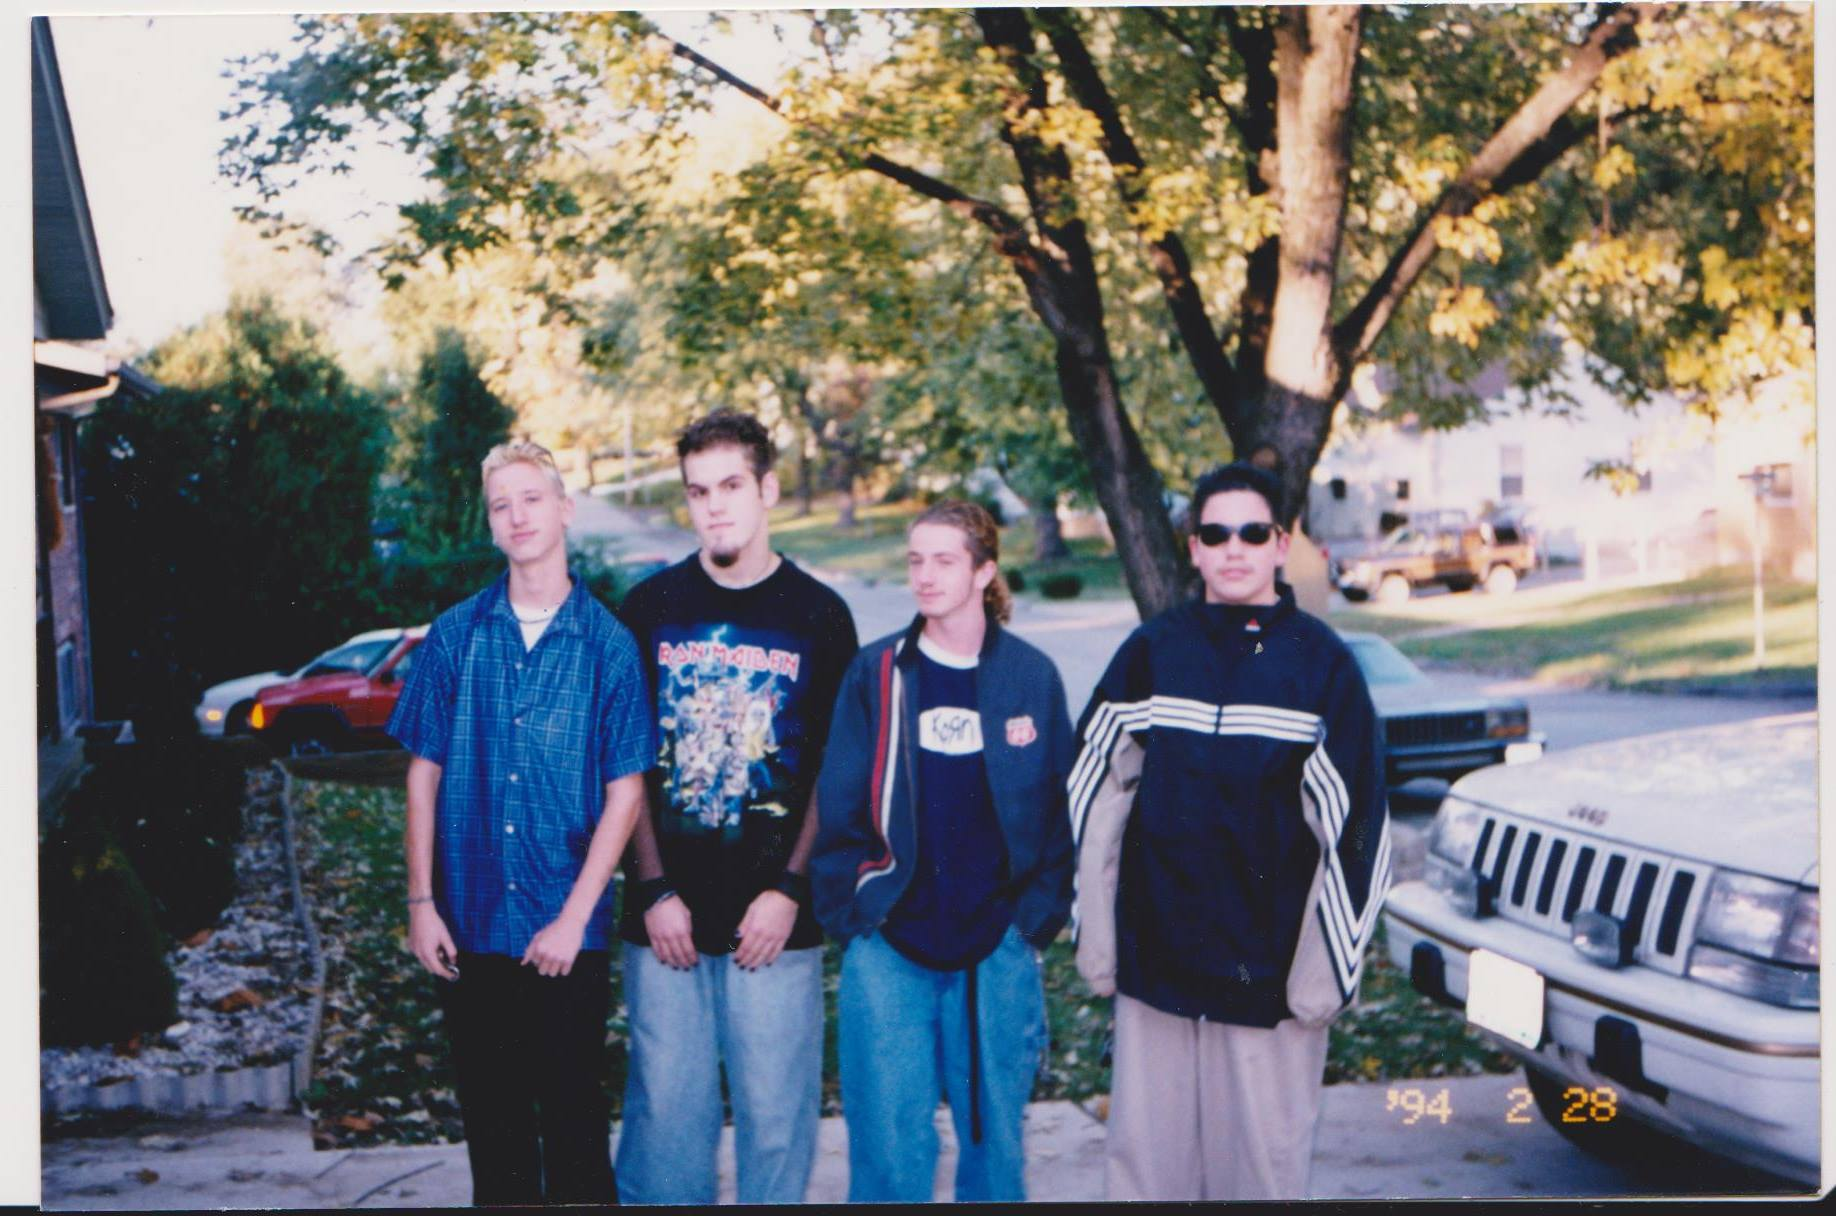 My first band, Cleared Out, before our first show in 1999. I'm on the far right.